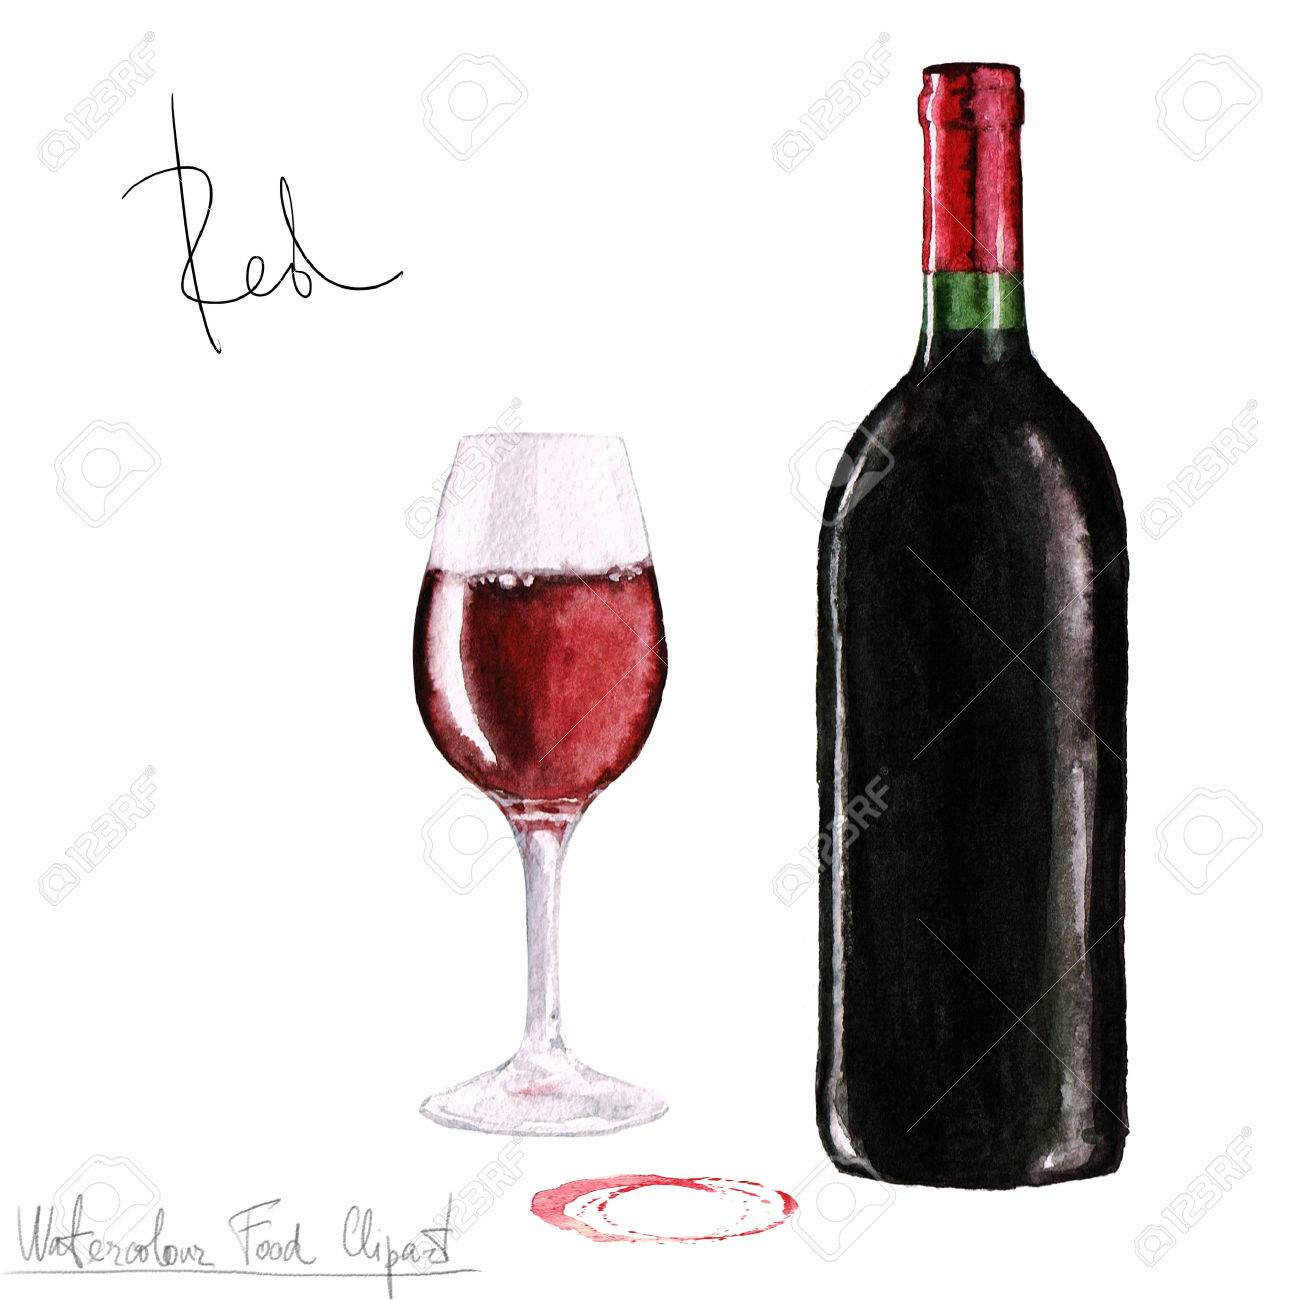 hight resolution of stock photo watercolor food clipart wine